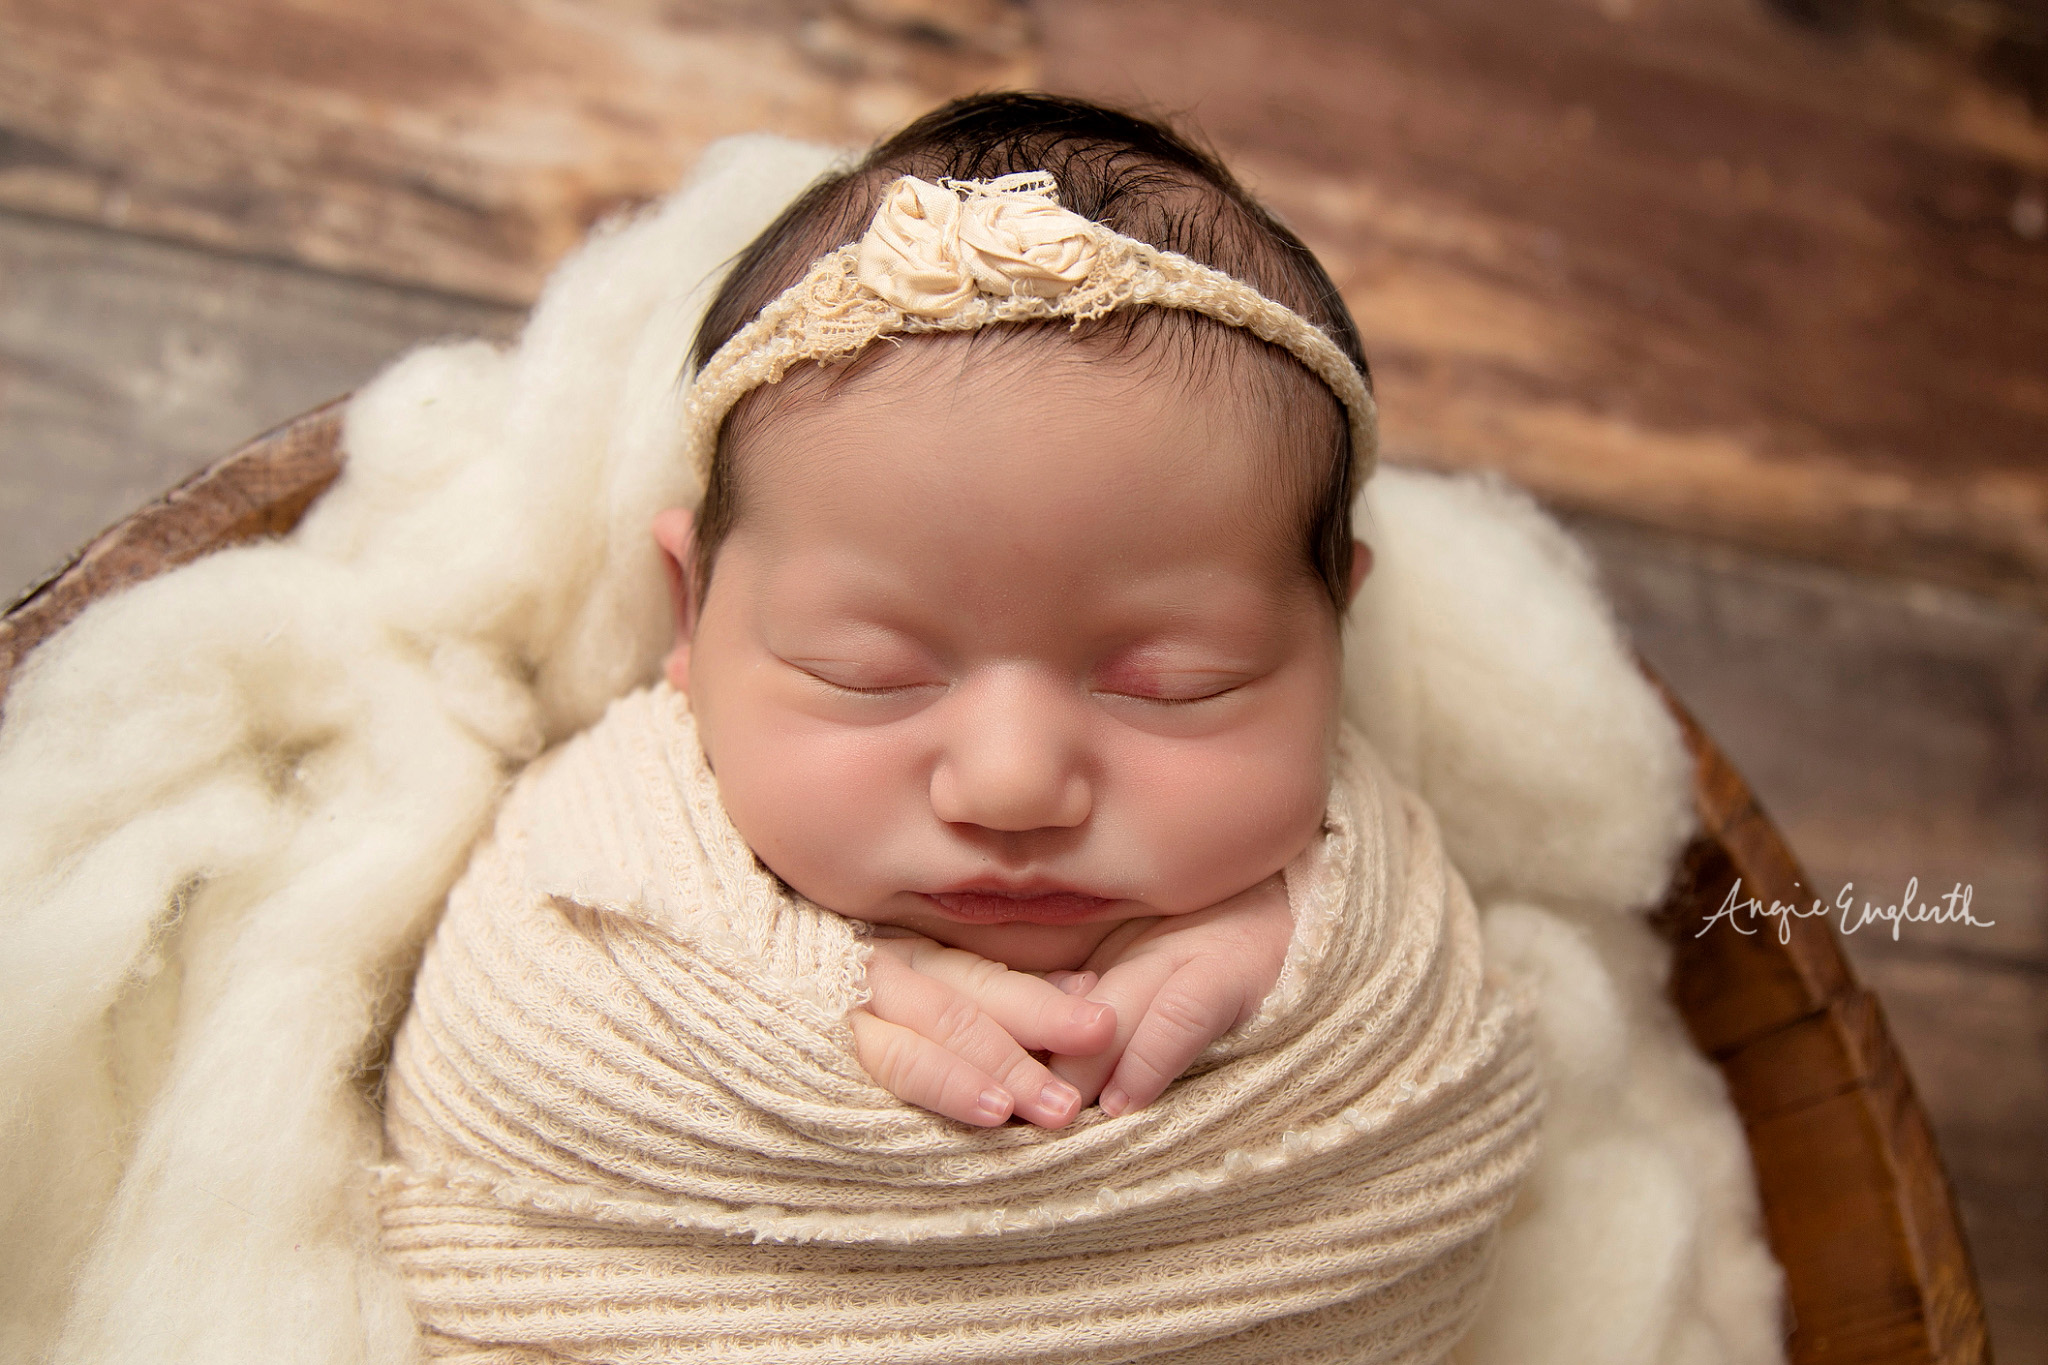 lancaster_newborn_and_maternity_photographer_angie_englerth_central_pa_b042.jpg